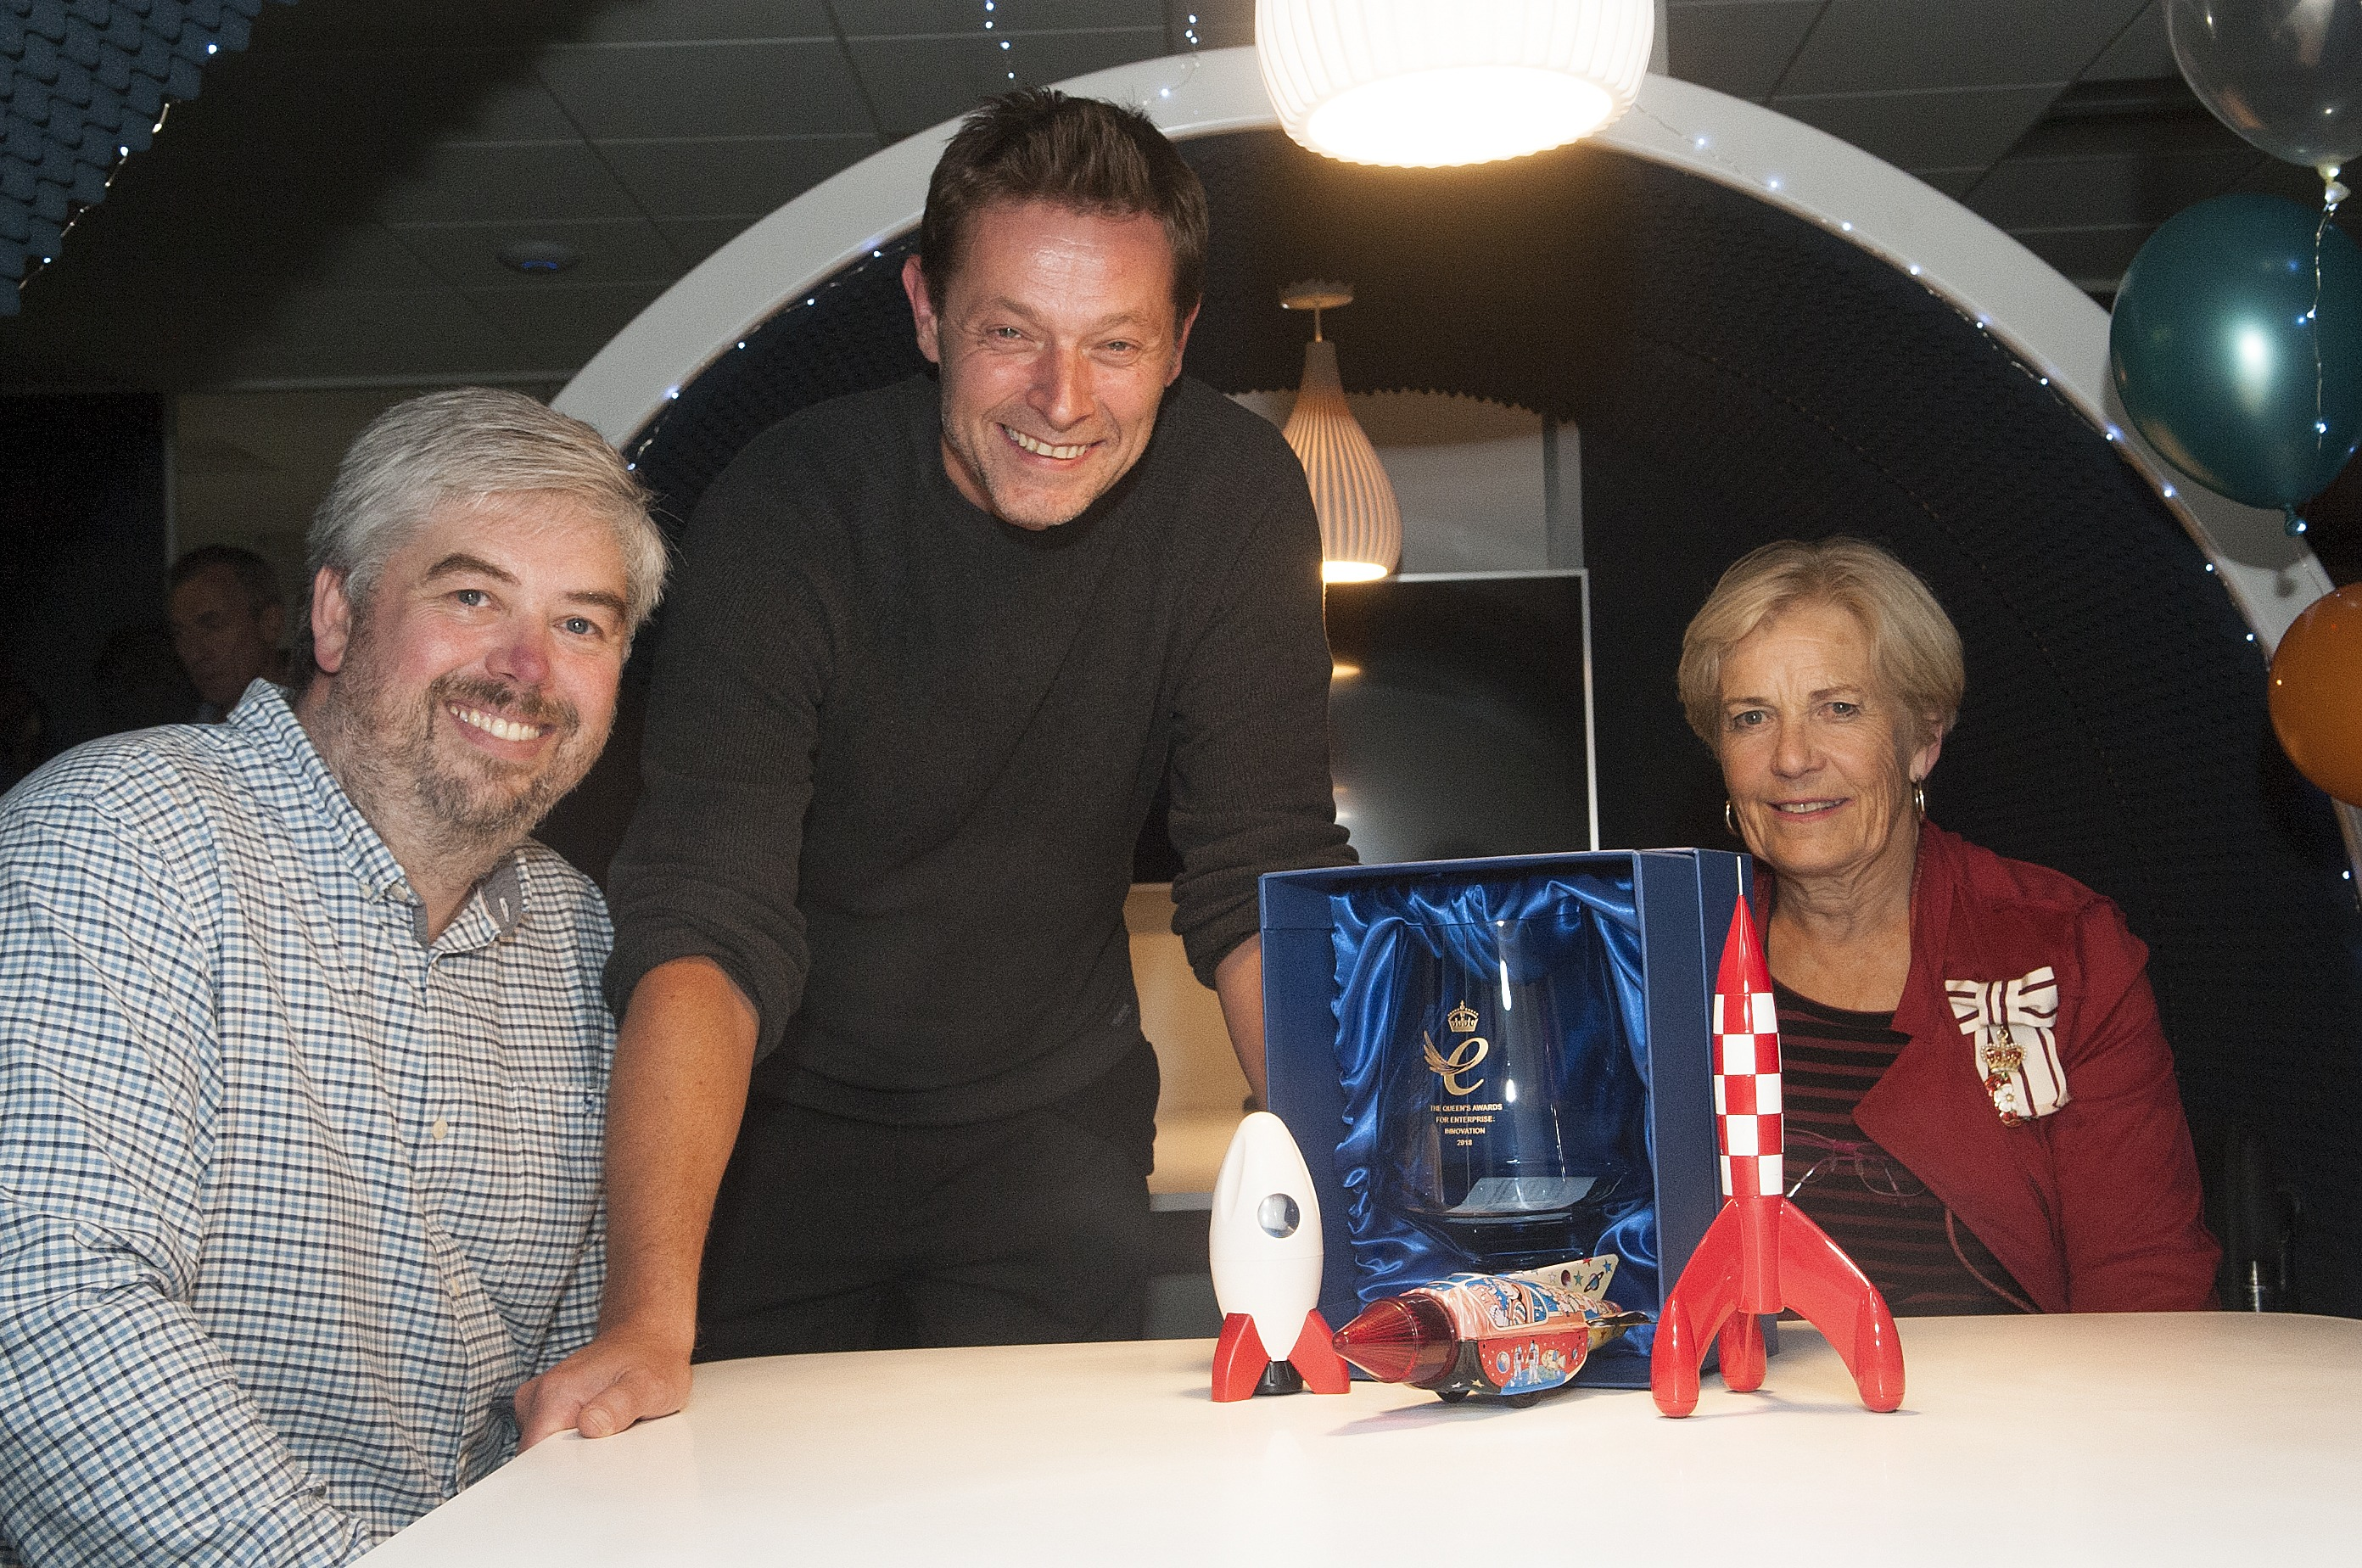 Queen's Award for Enterprise presented to Rocketmakers by representatives  of Her Majesty The Queen